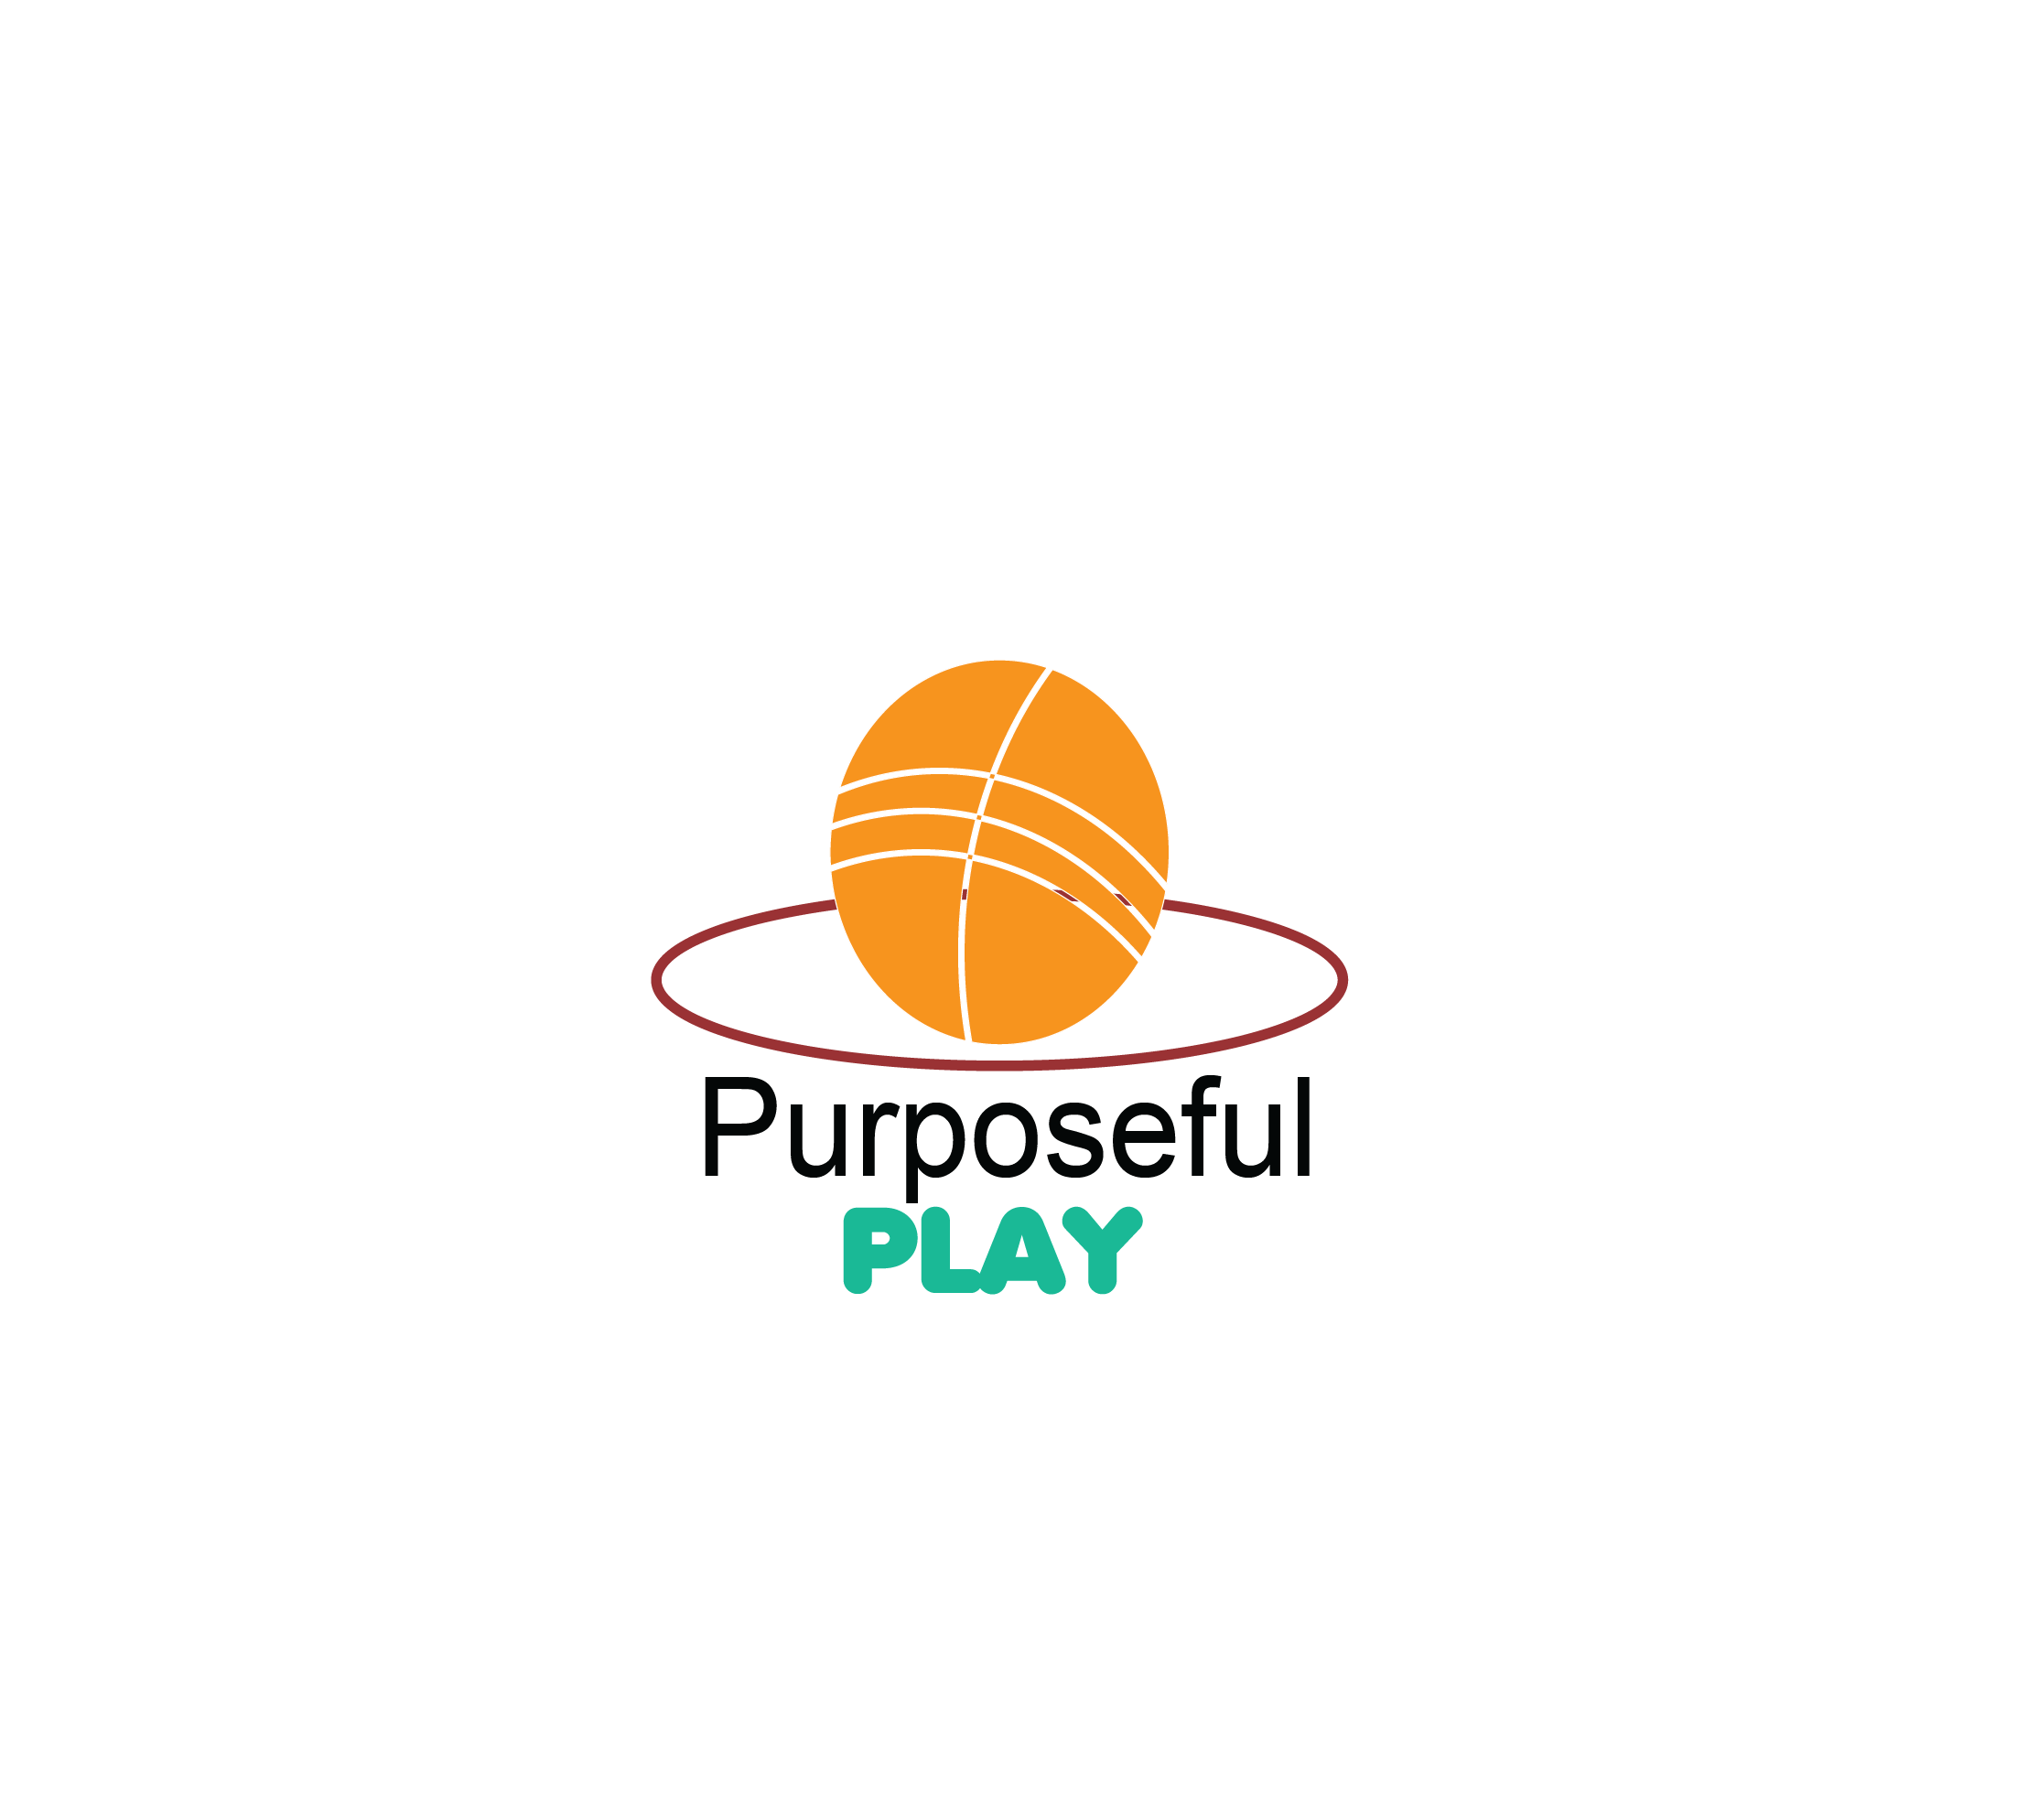 Logo Design by aanygraphic - Entry No. 39 in the Logo Design Contest Purposeful PLAY Logo Design.